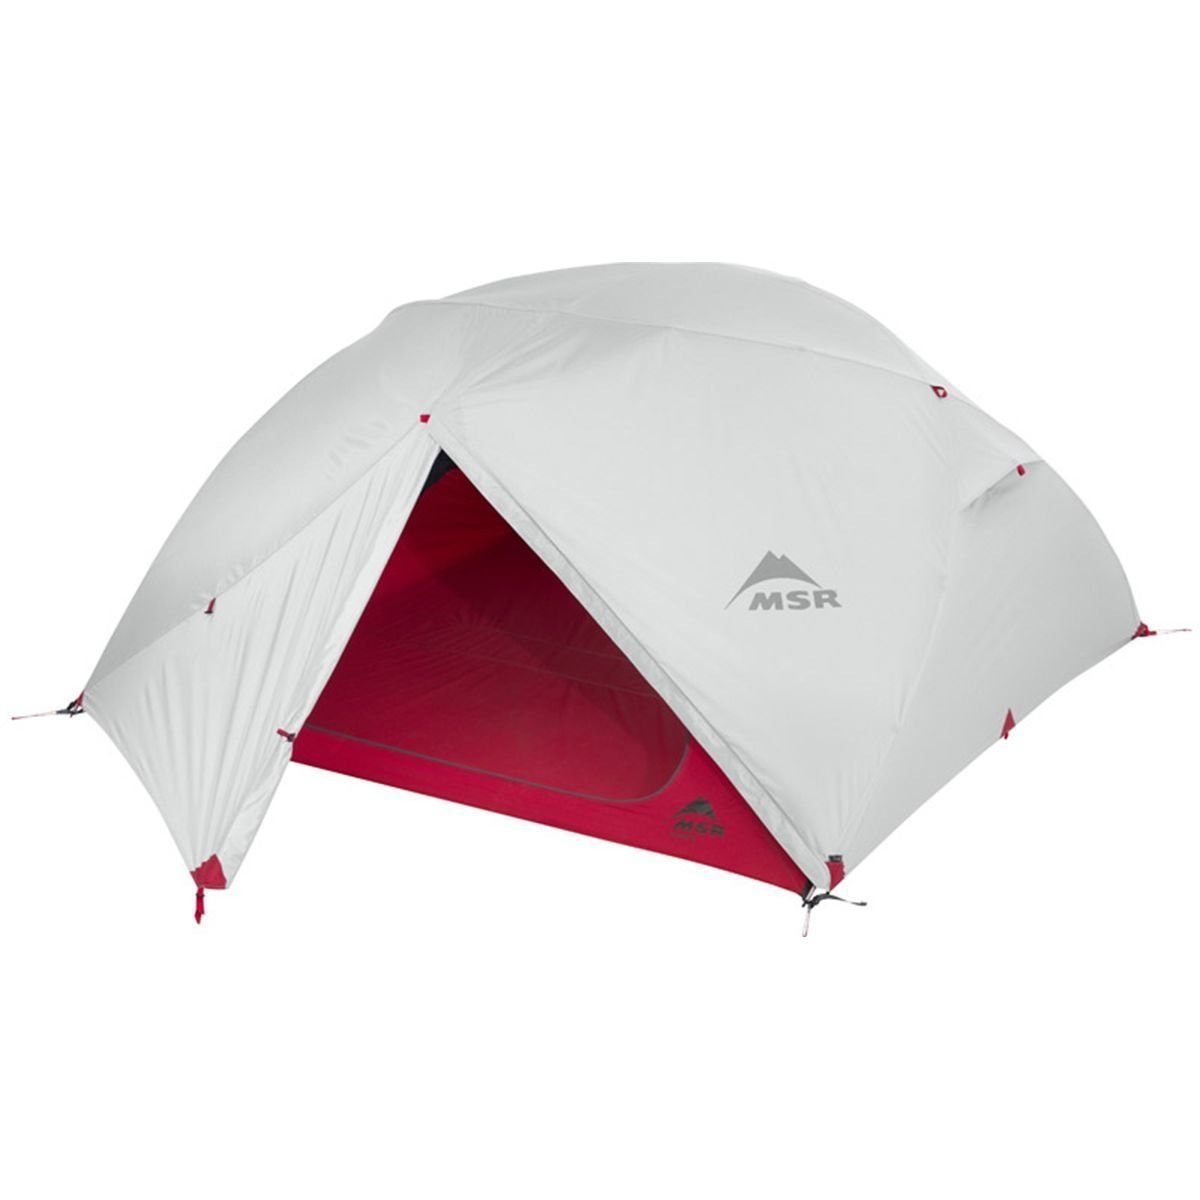 MSR Elixir 4-Person Lightweight Backpacking Tent